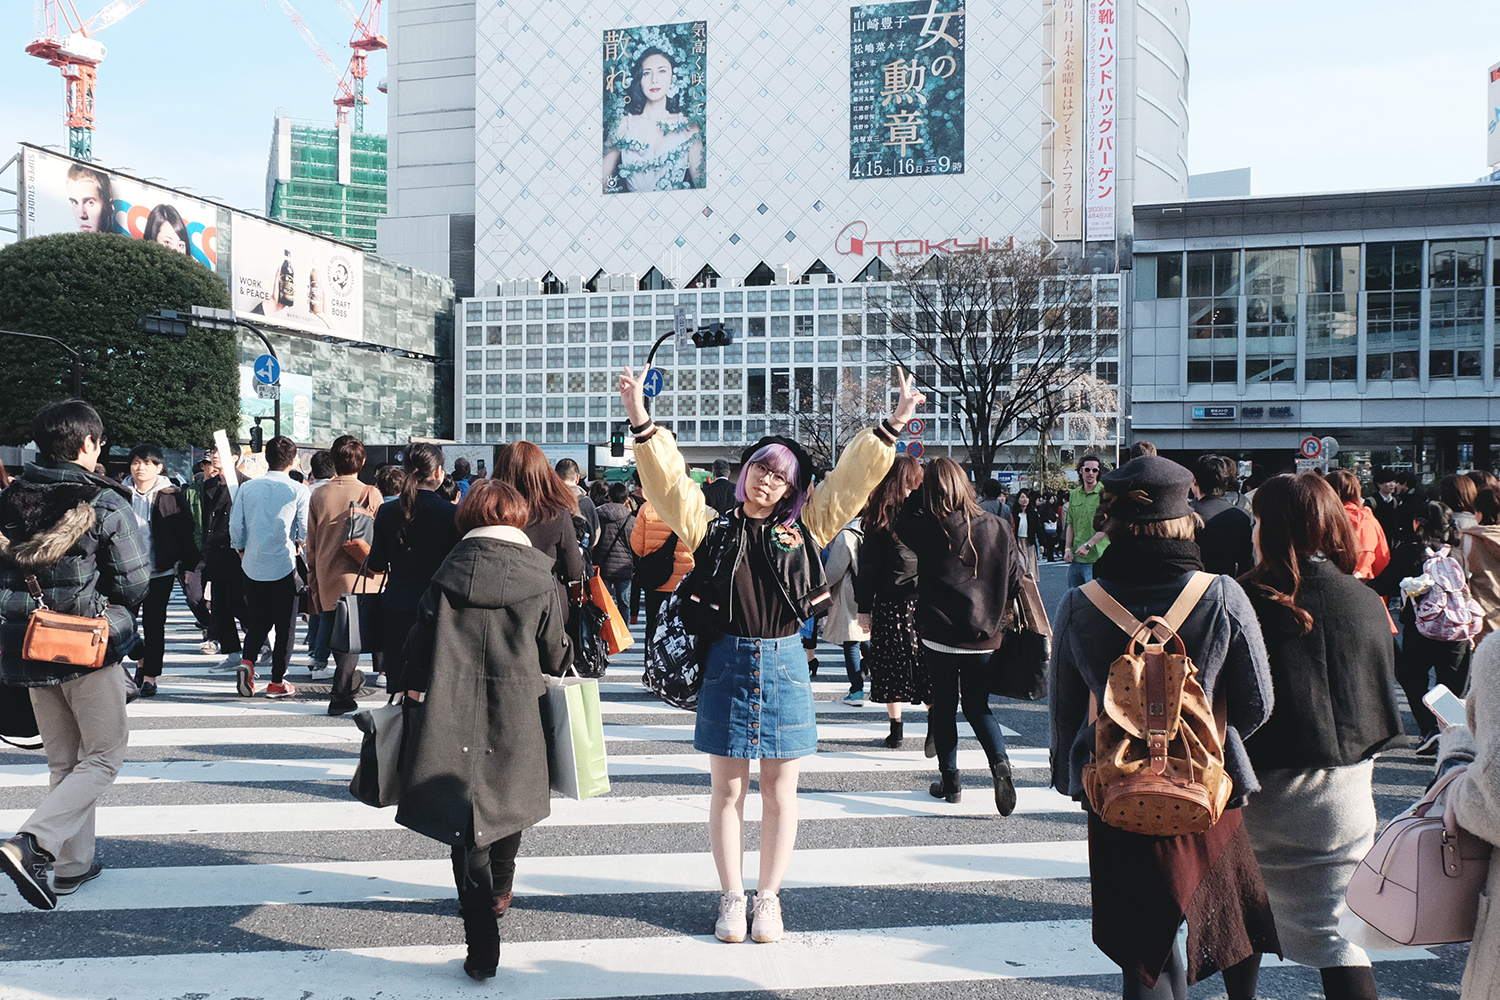 Useful Japan Travel Tips - Shibuya Crossing | www.bigdreamerblog.com